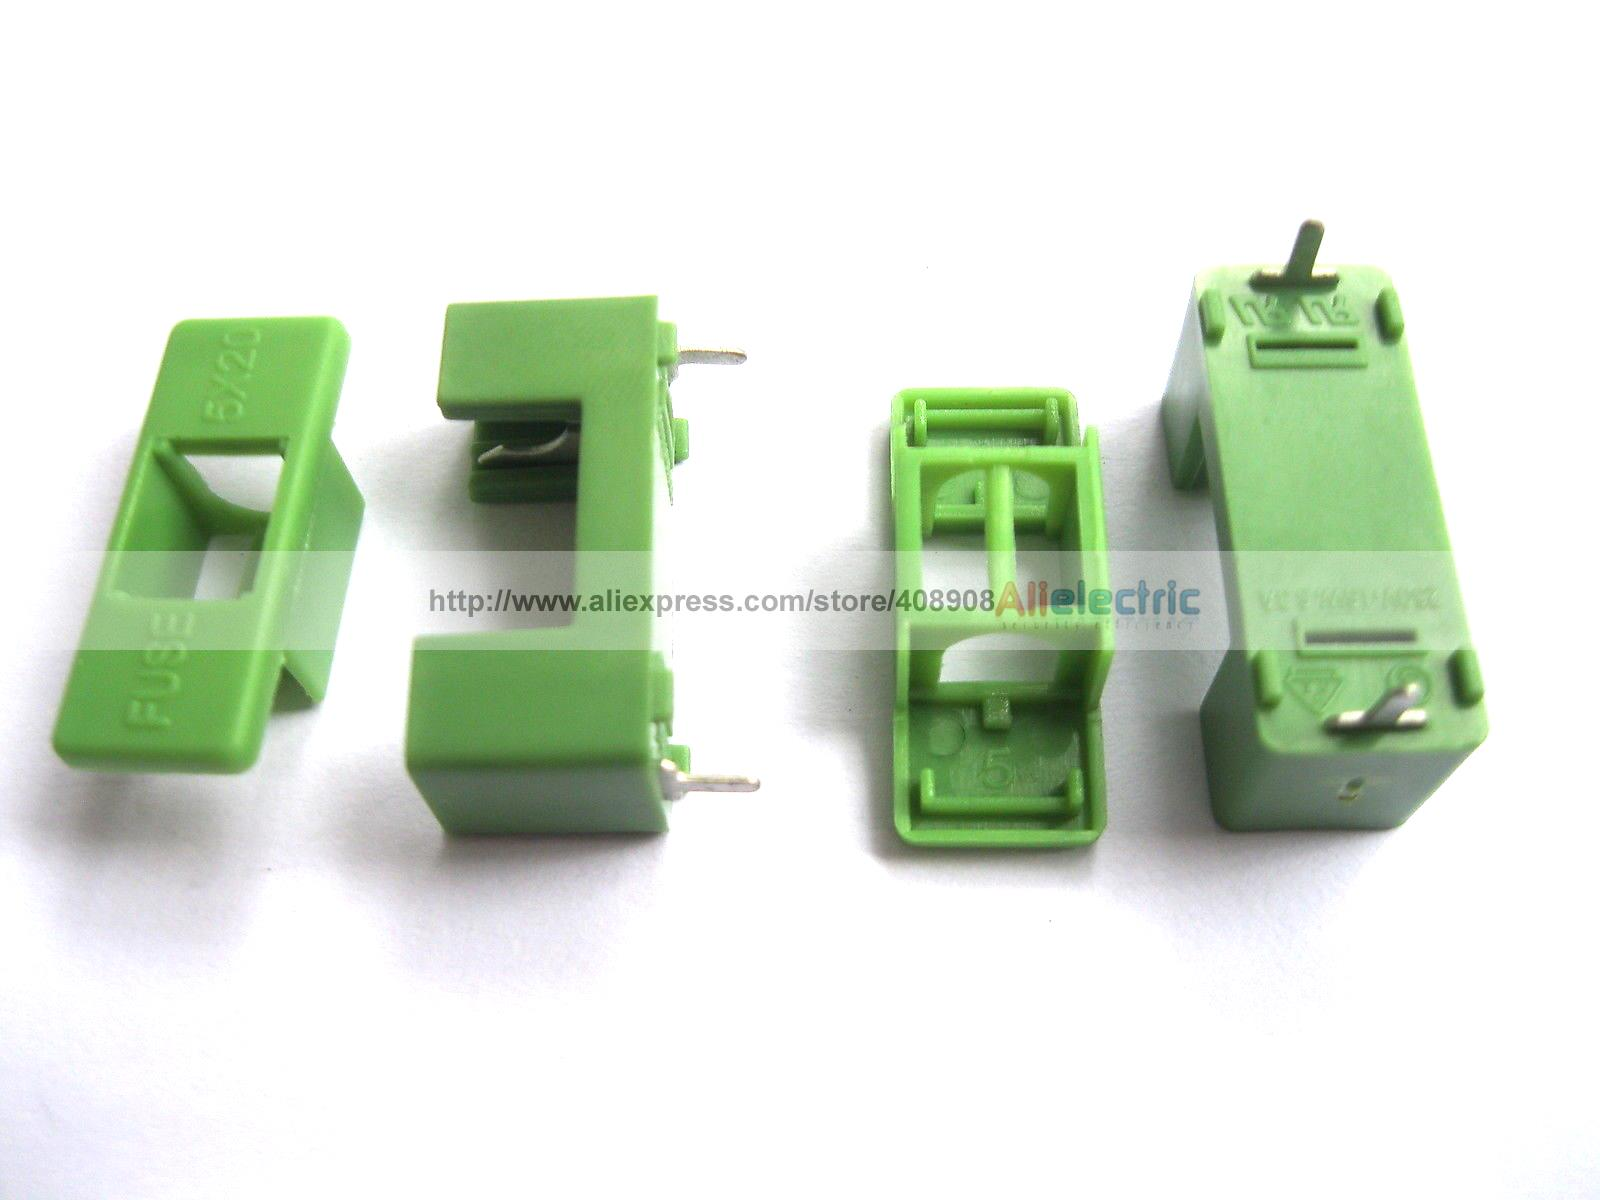 100 Pcs PTF 7 DIP Fuse Holder 6 3A 250V Used for 5x20 Green Color mip0254 dip 7 page 3